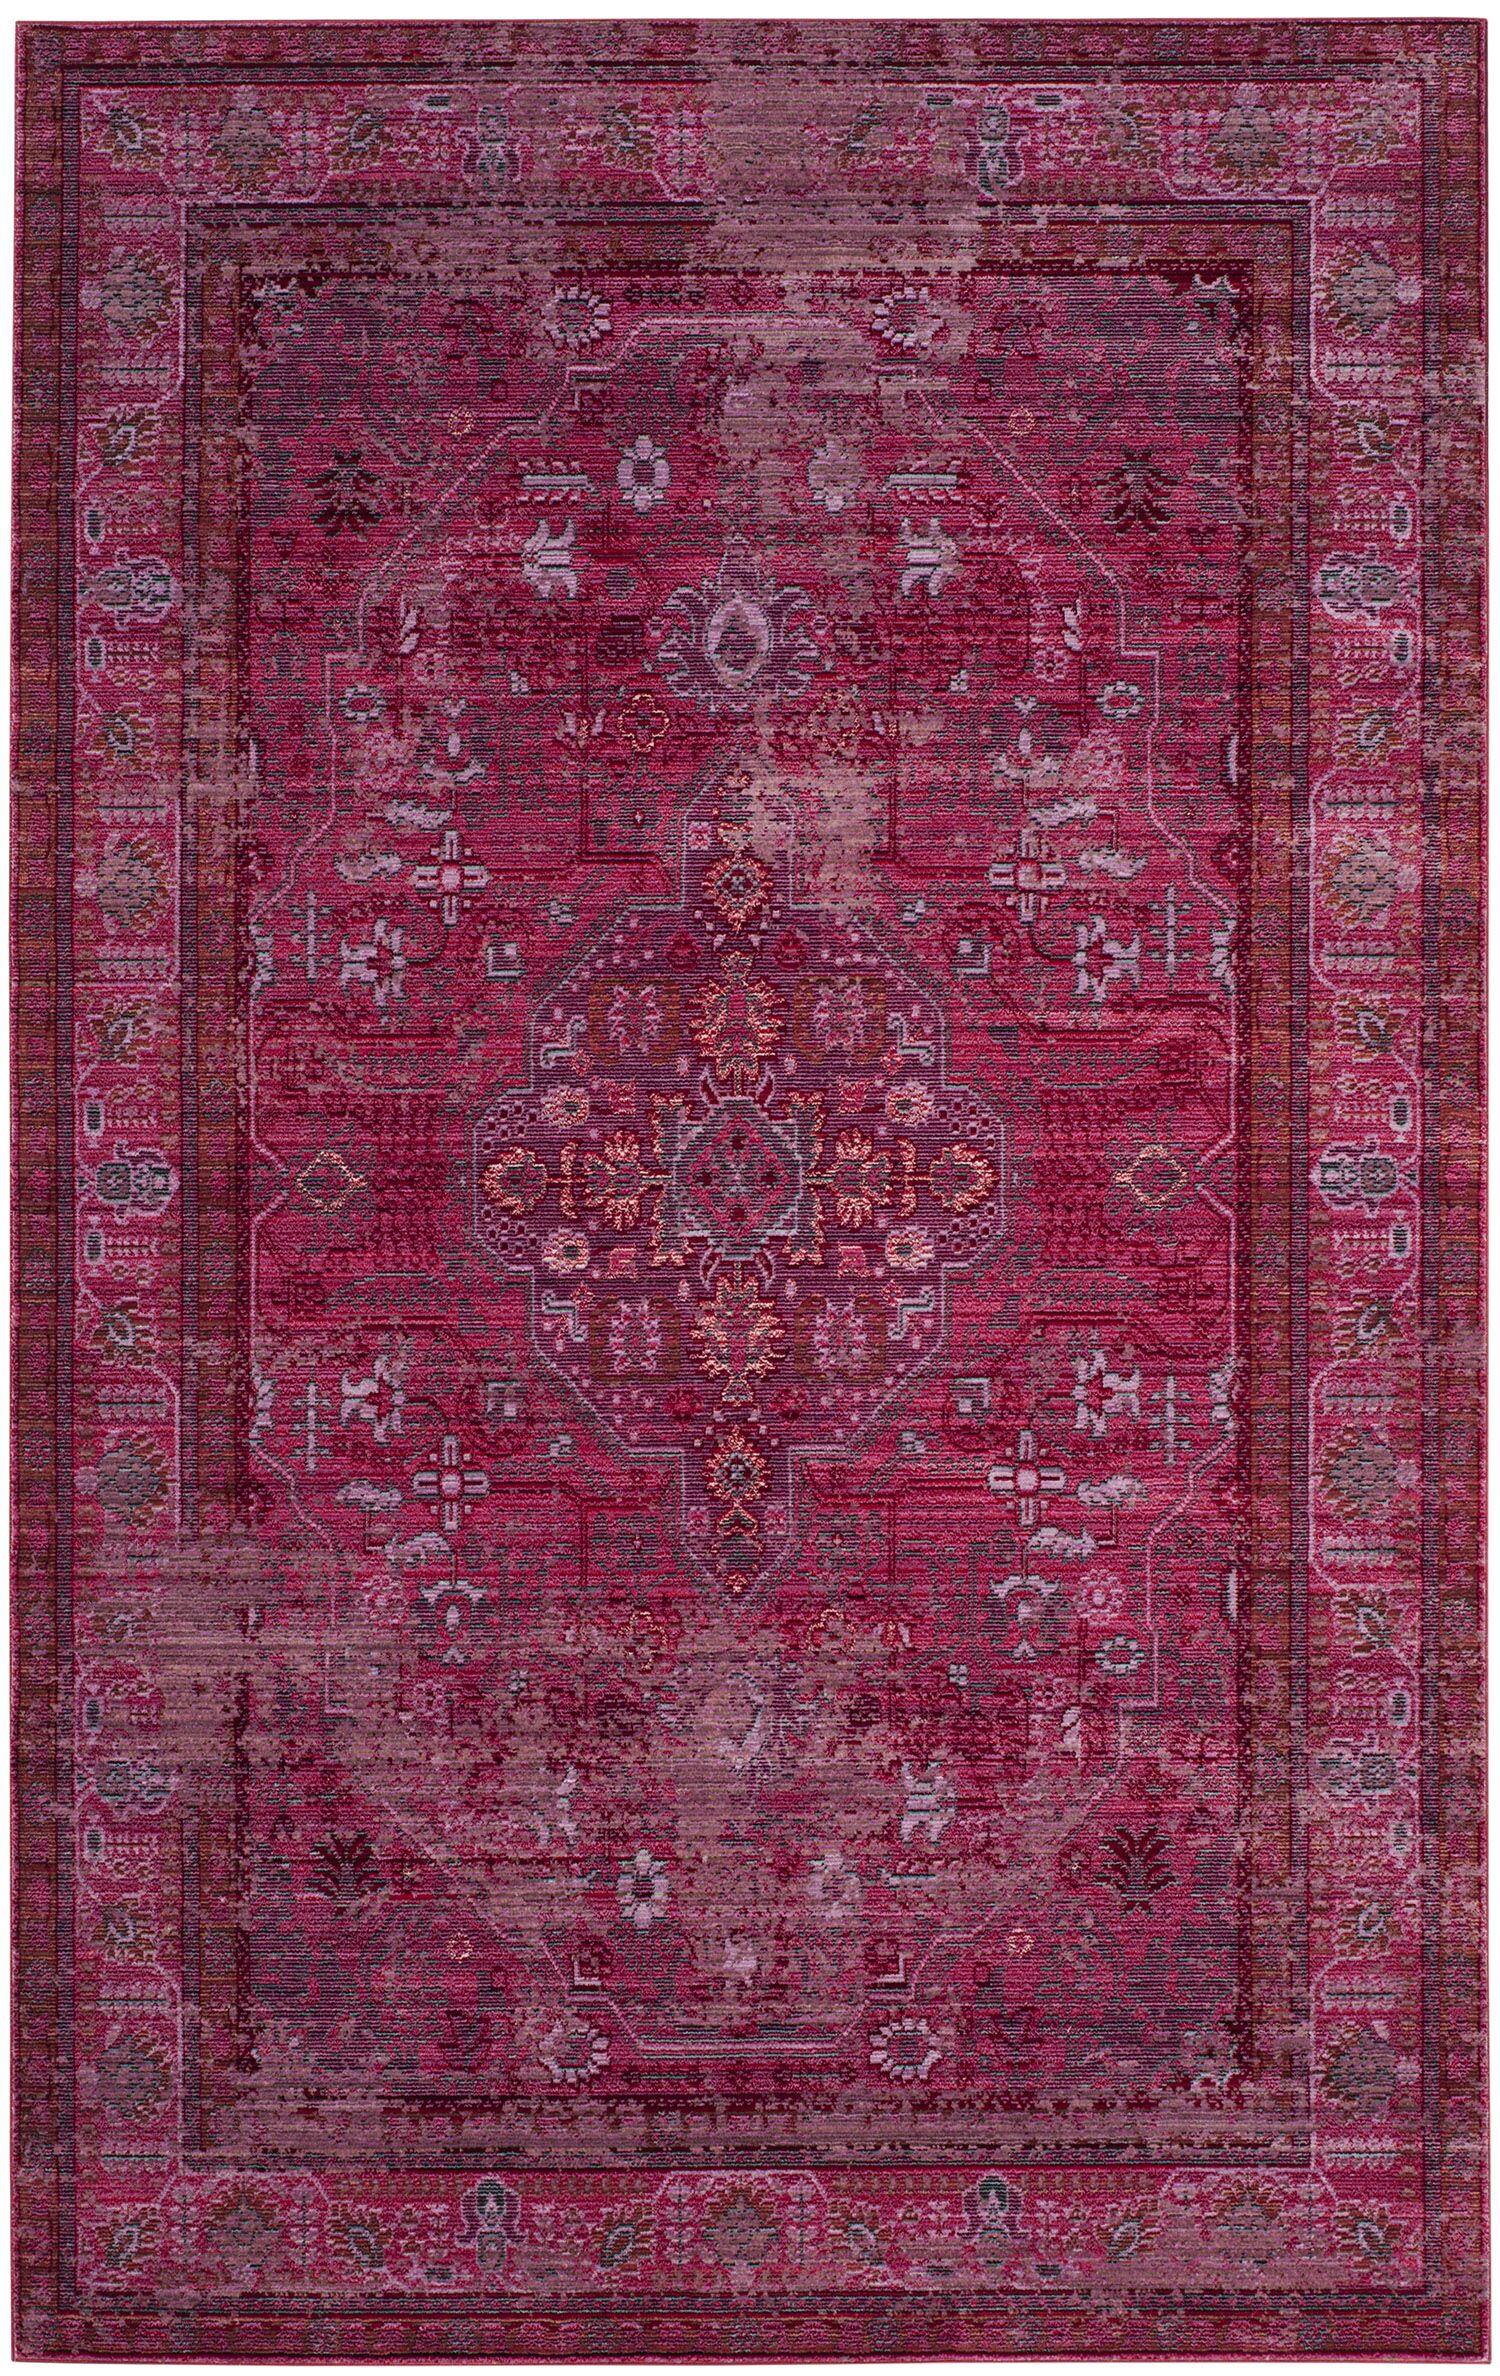 Privette Red Area Rug Rug Size: Rectangle 5' x 8'